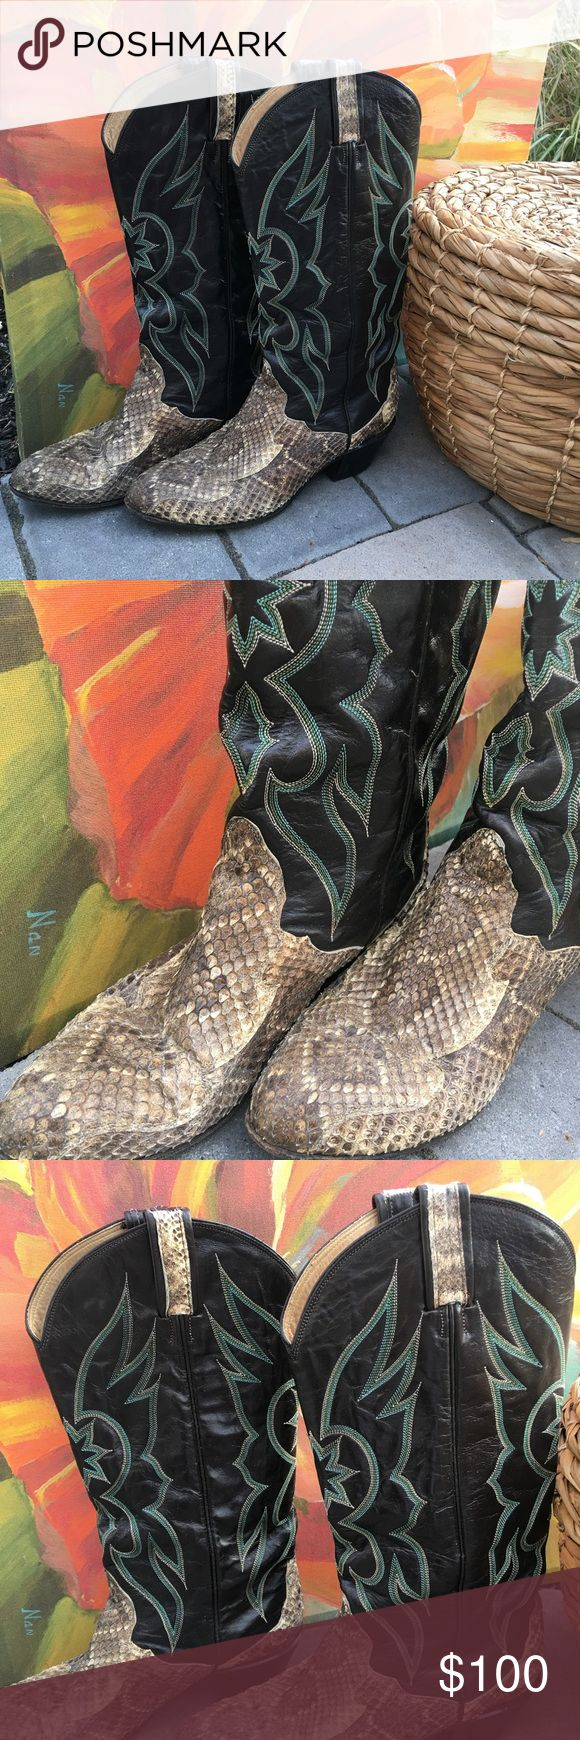 Tony Lama boots 8.5 snakeskin Tony Lama boots 8.5 snakeskin/some wear/ or curling of natural snakeskin/ please see pic for condition... adorable Tony Lama Shoes